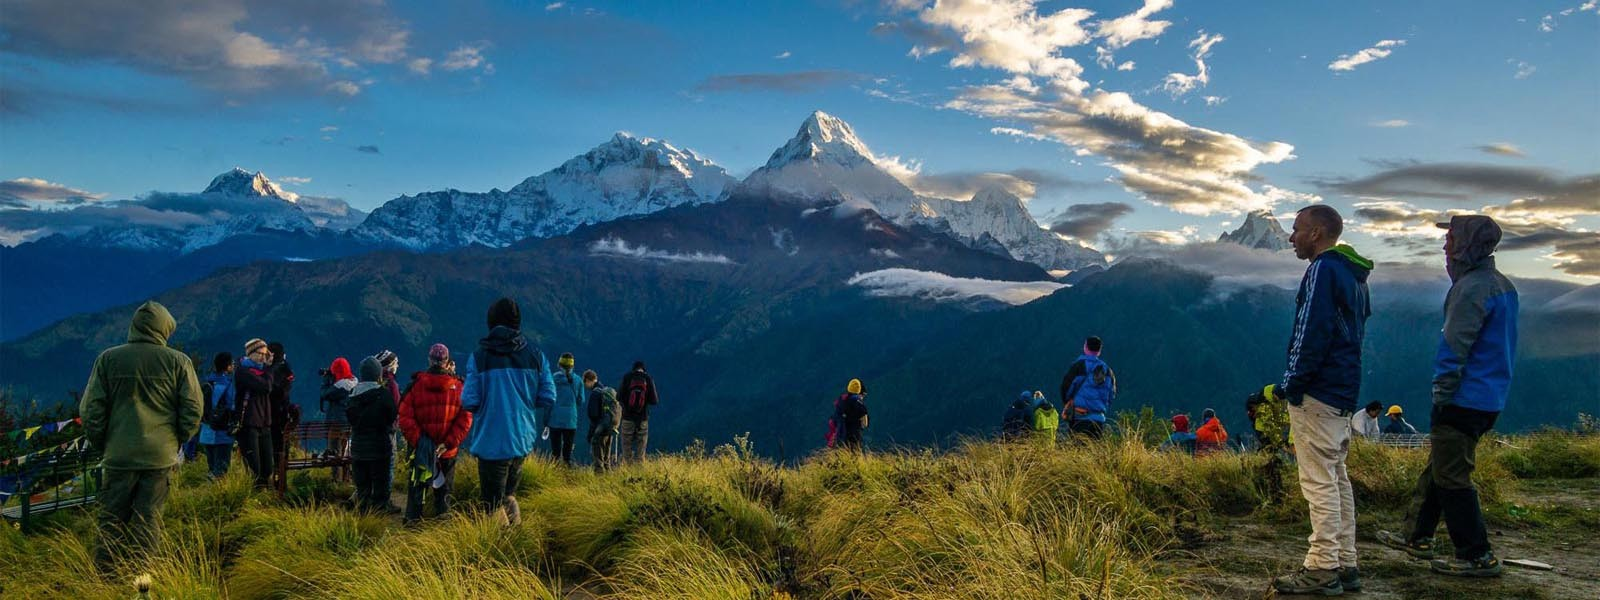 Ghorepani Poon Hill with Annapurna Base Camp Trekking